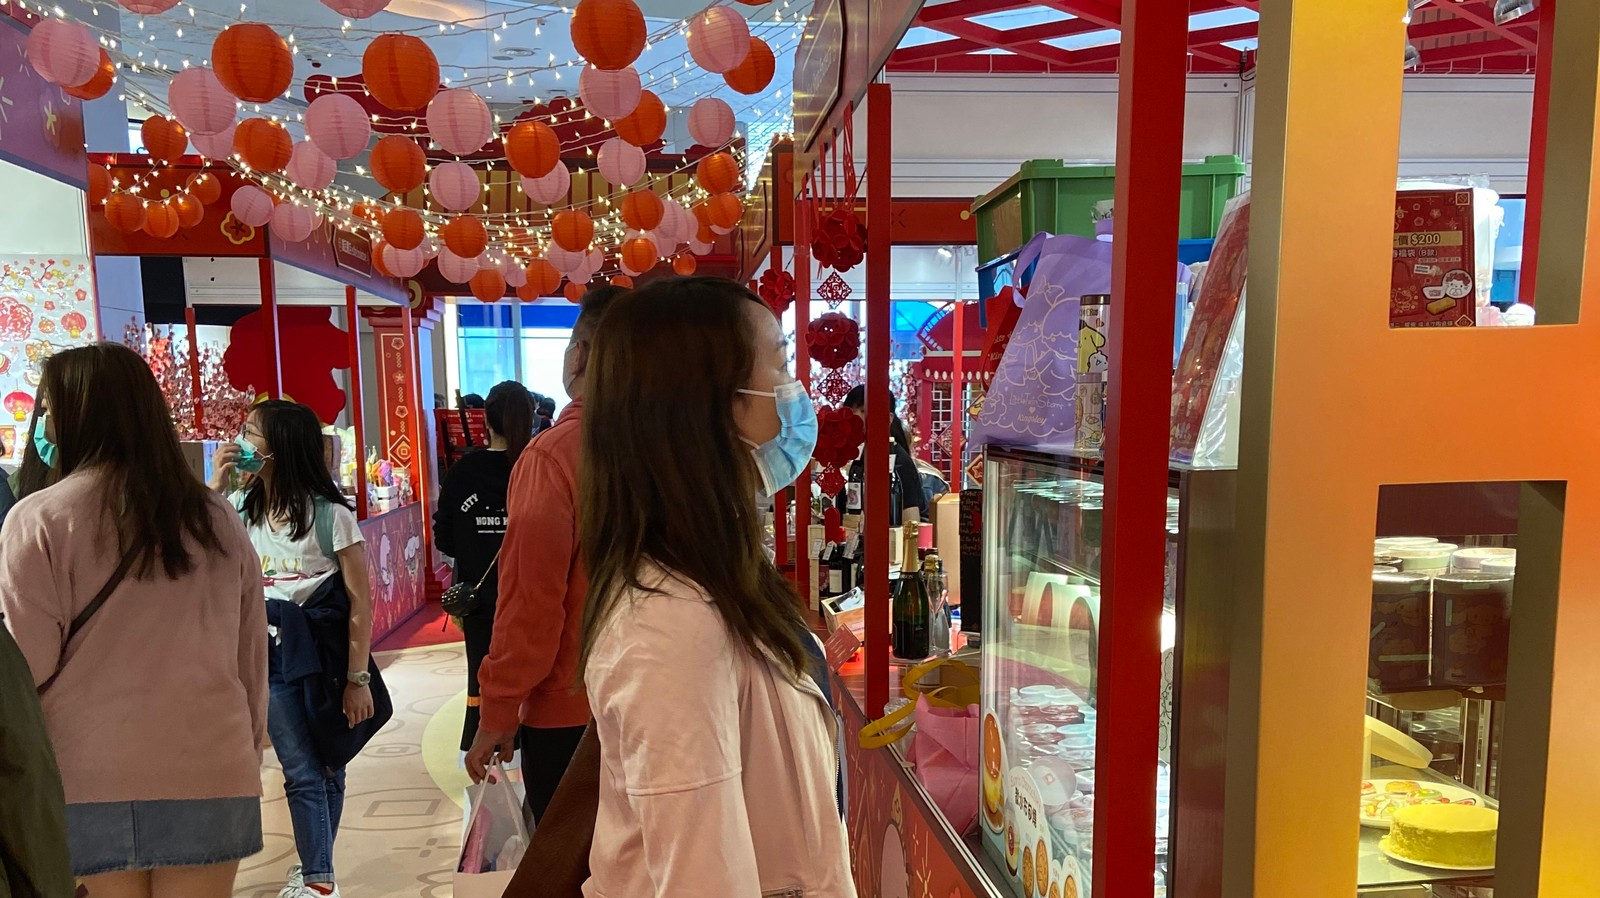 Fear of the New Coronavirus Is Changing How Hong Kong Celebrates Chinese New Year